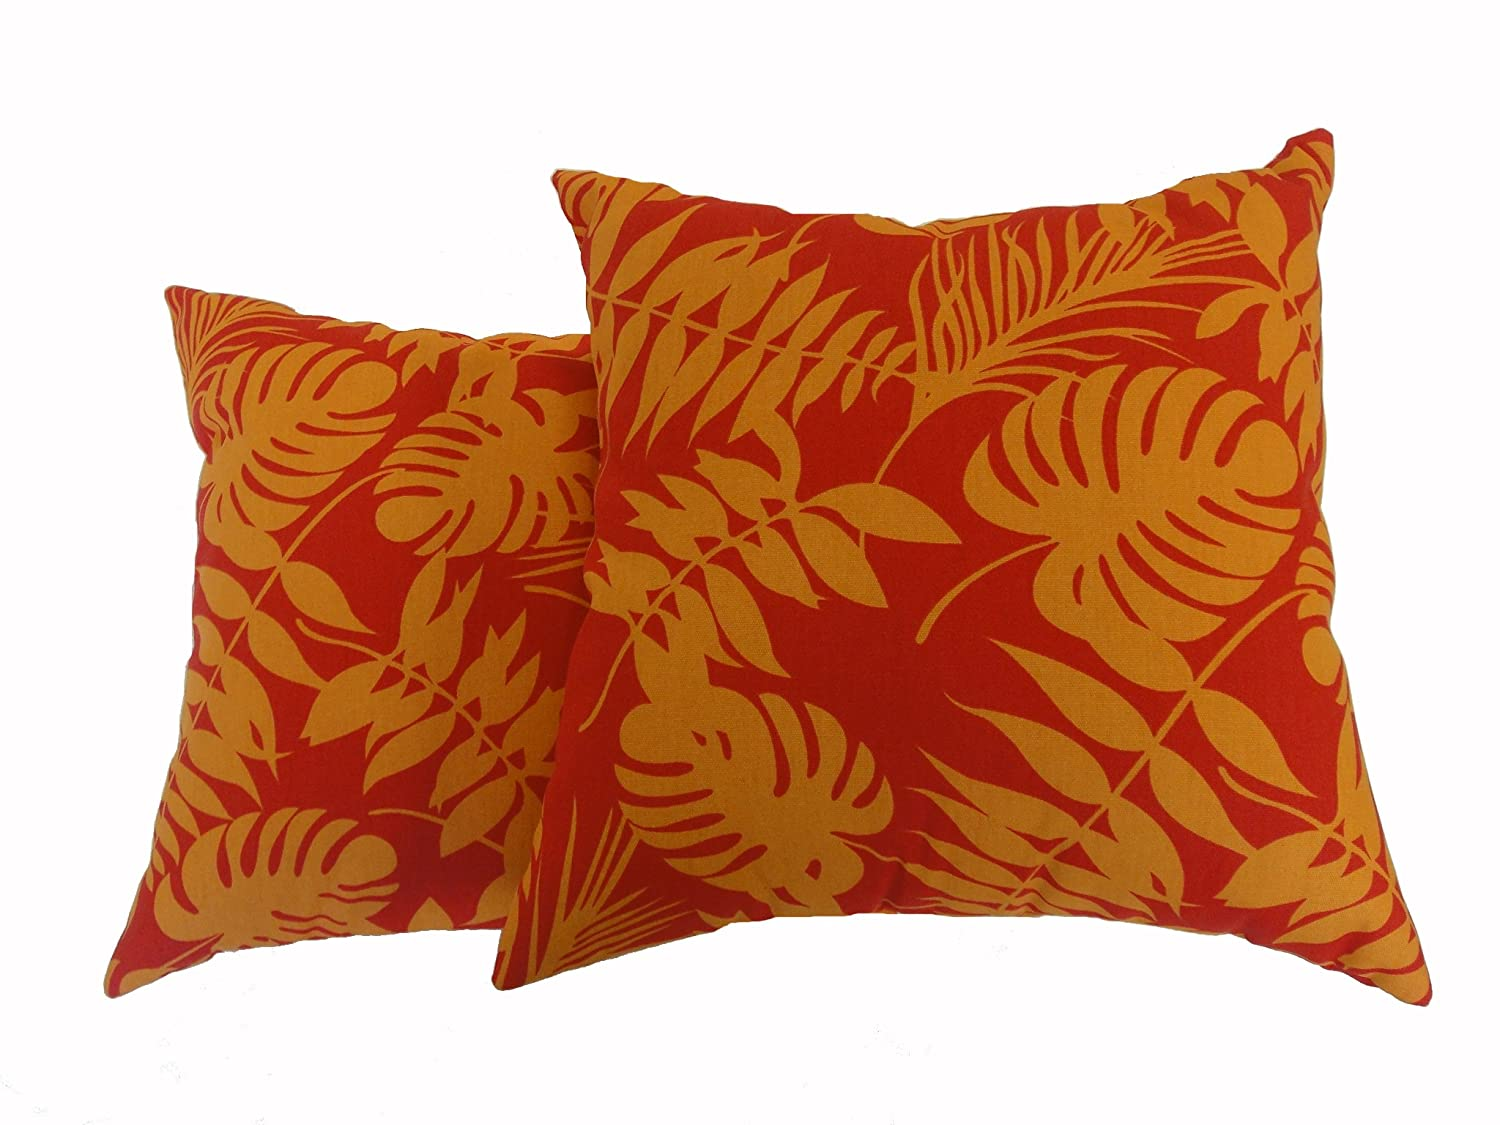 Decorative Pillows Newport Layton Home Fashions : Newport Layton Home Fashions 2-Pack KE20 Indoor/Outdoor Pillows eBay